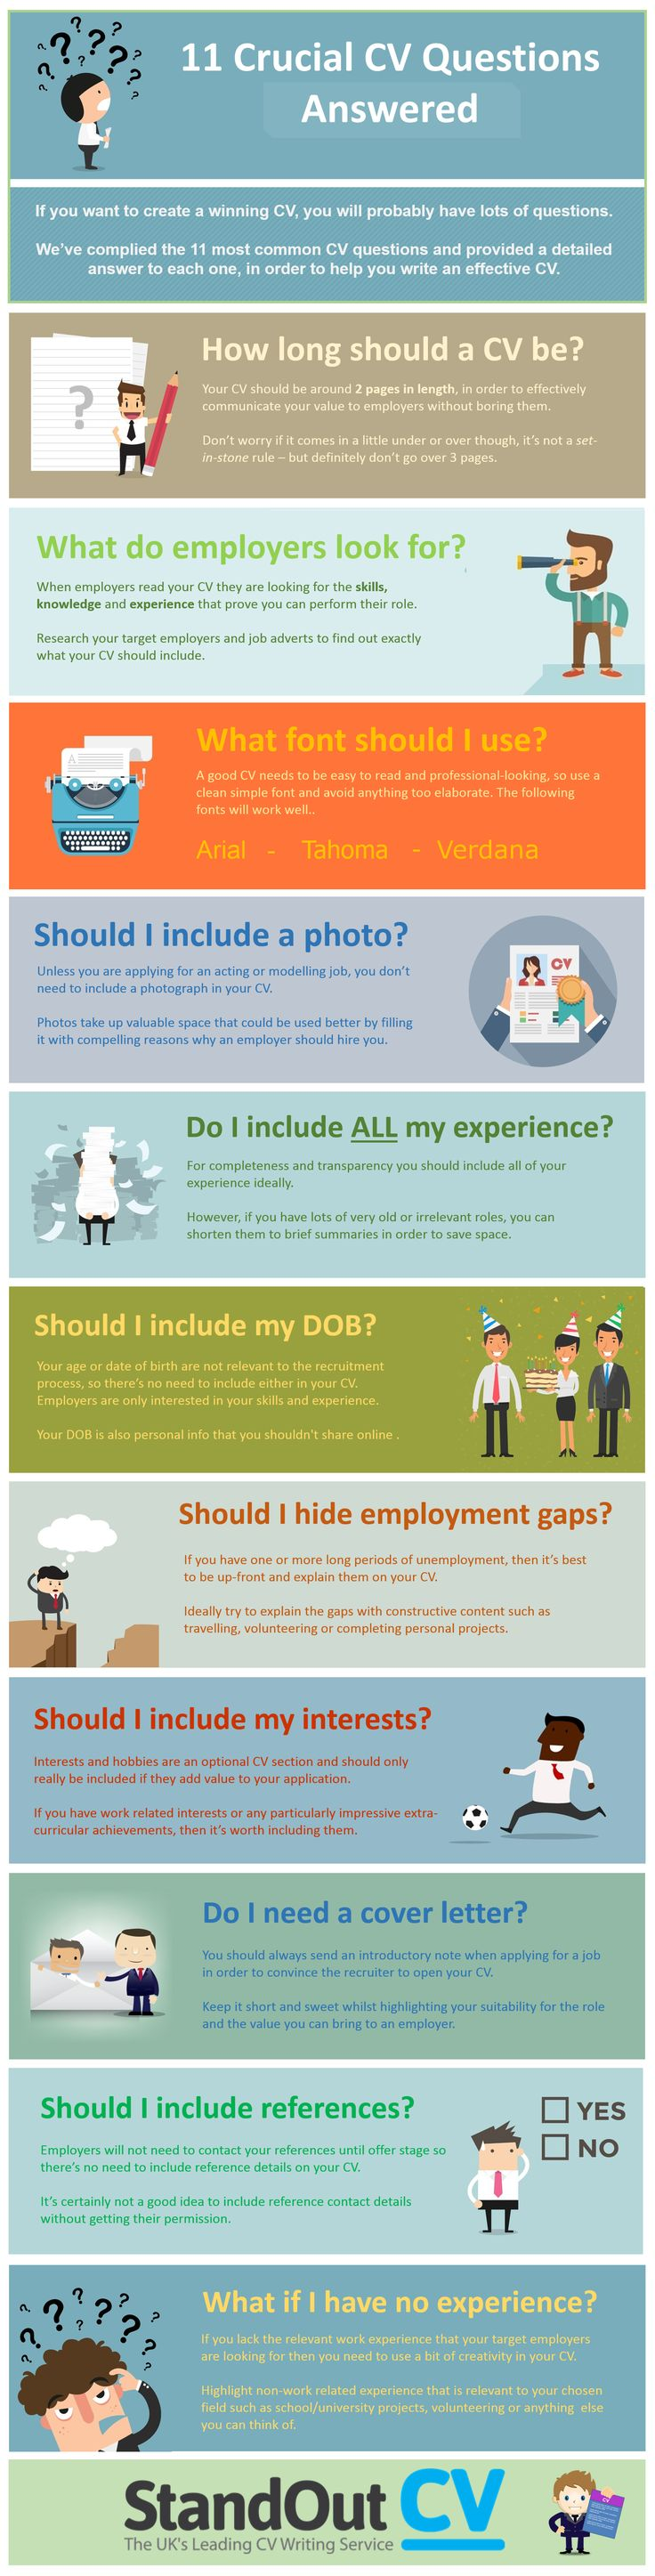 The 11 Most Common CV Writing Questions Answered Infographic - http://elearninginfographics.com/the-11-most-common-cv-writing-questions-answered/